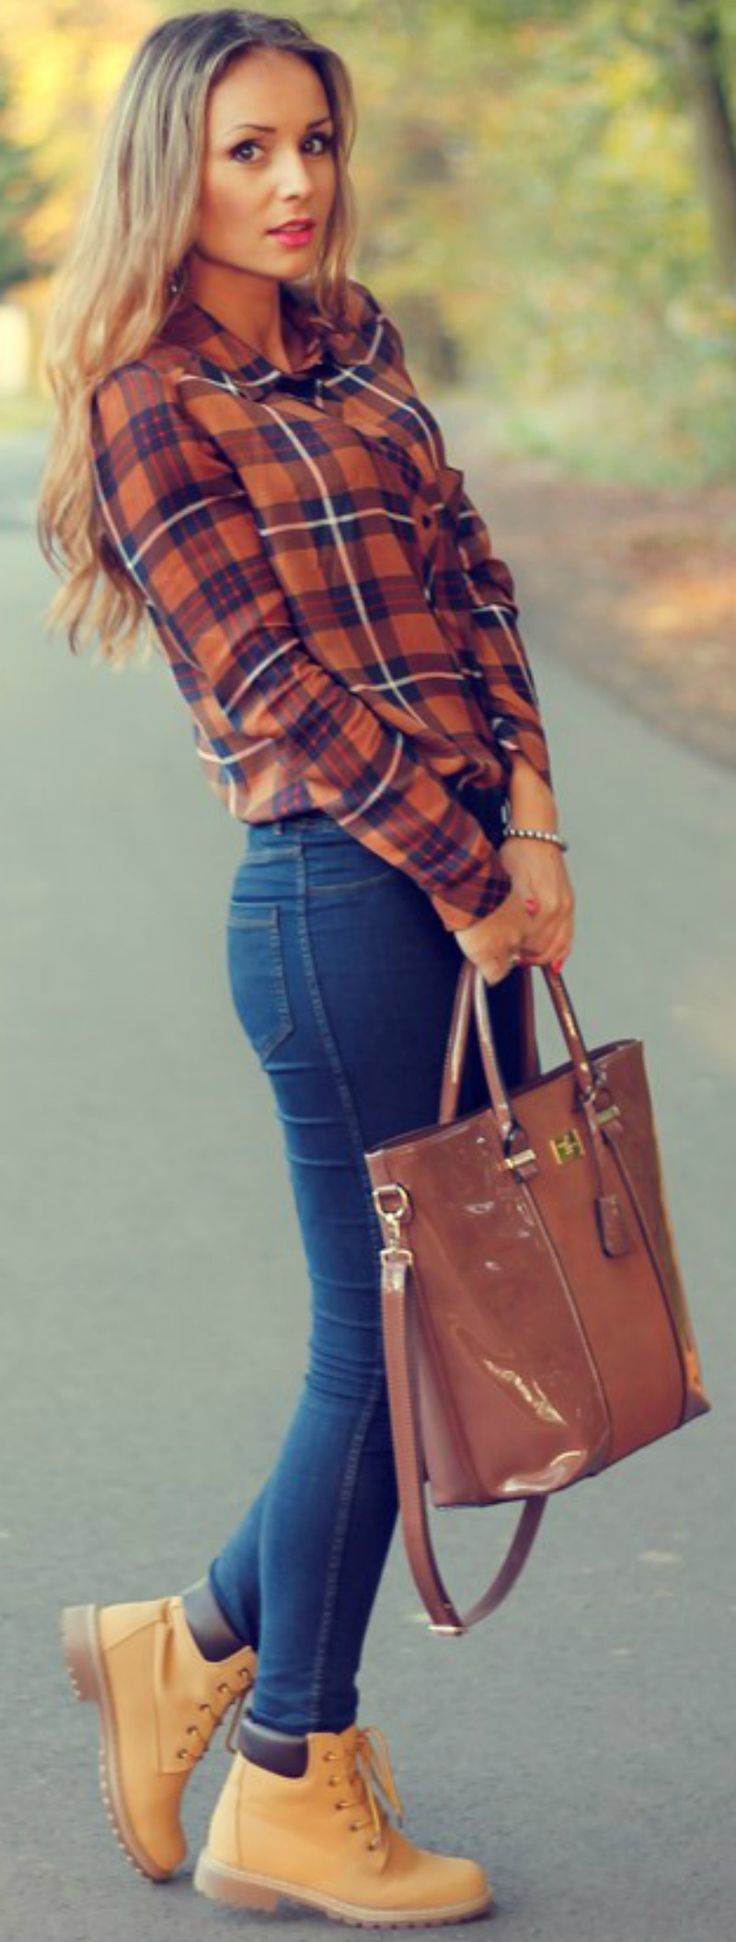 Joanna Kocierz  absolutely rocks the classic lumberjack style here, pairing a check shirt with jeans and Timberlands. This look is a must-try for anyone wanting to achieve those cool, casual winter vibes.   Blouse: Pull&Bear, Jeans: Paulo Connerti, Shoes: Stylowebuty.pl, Handbag: Handbags David jones.net.